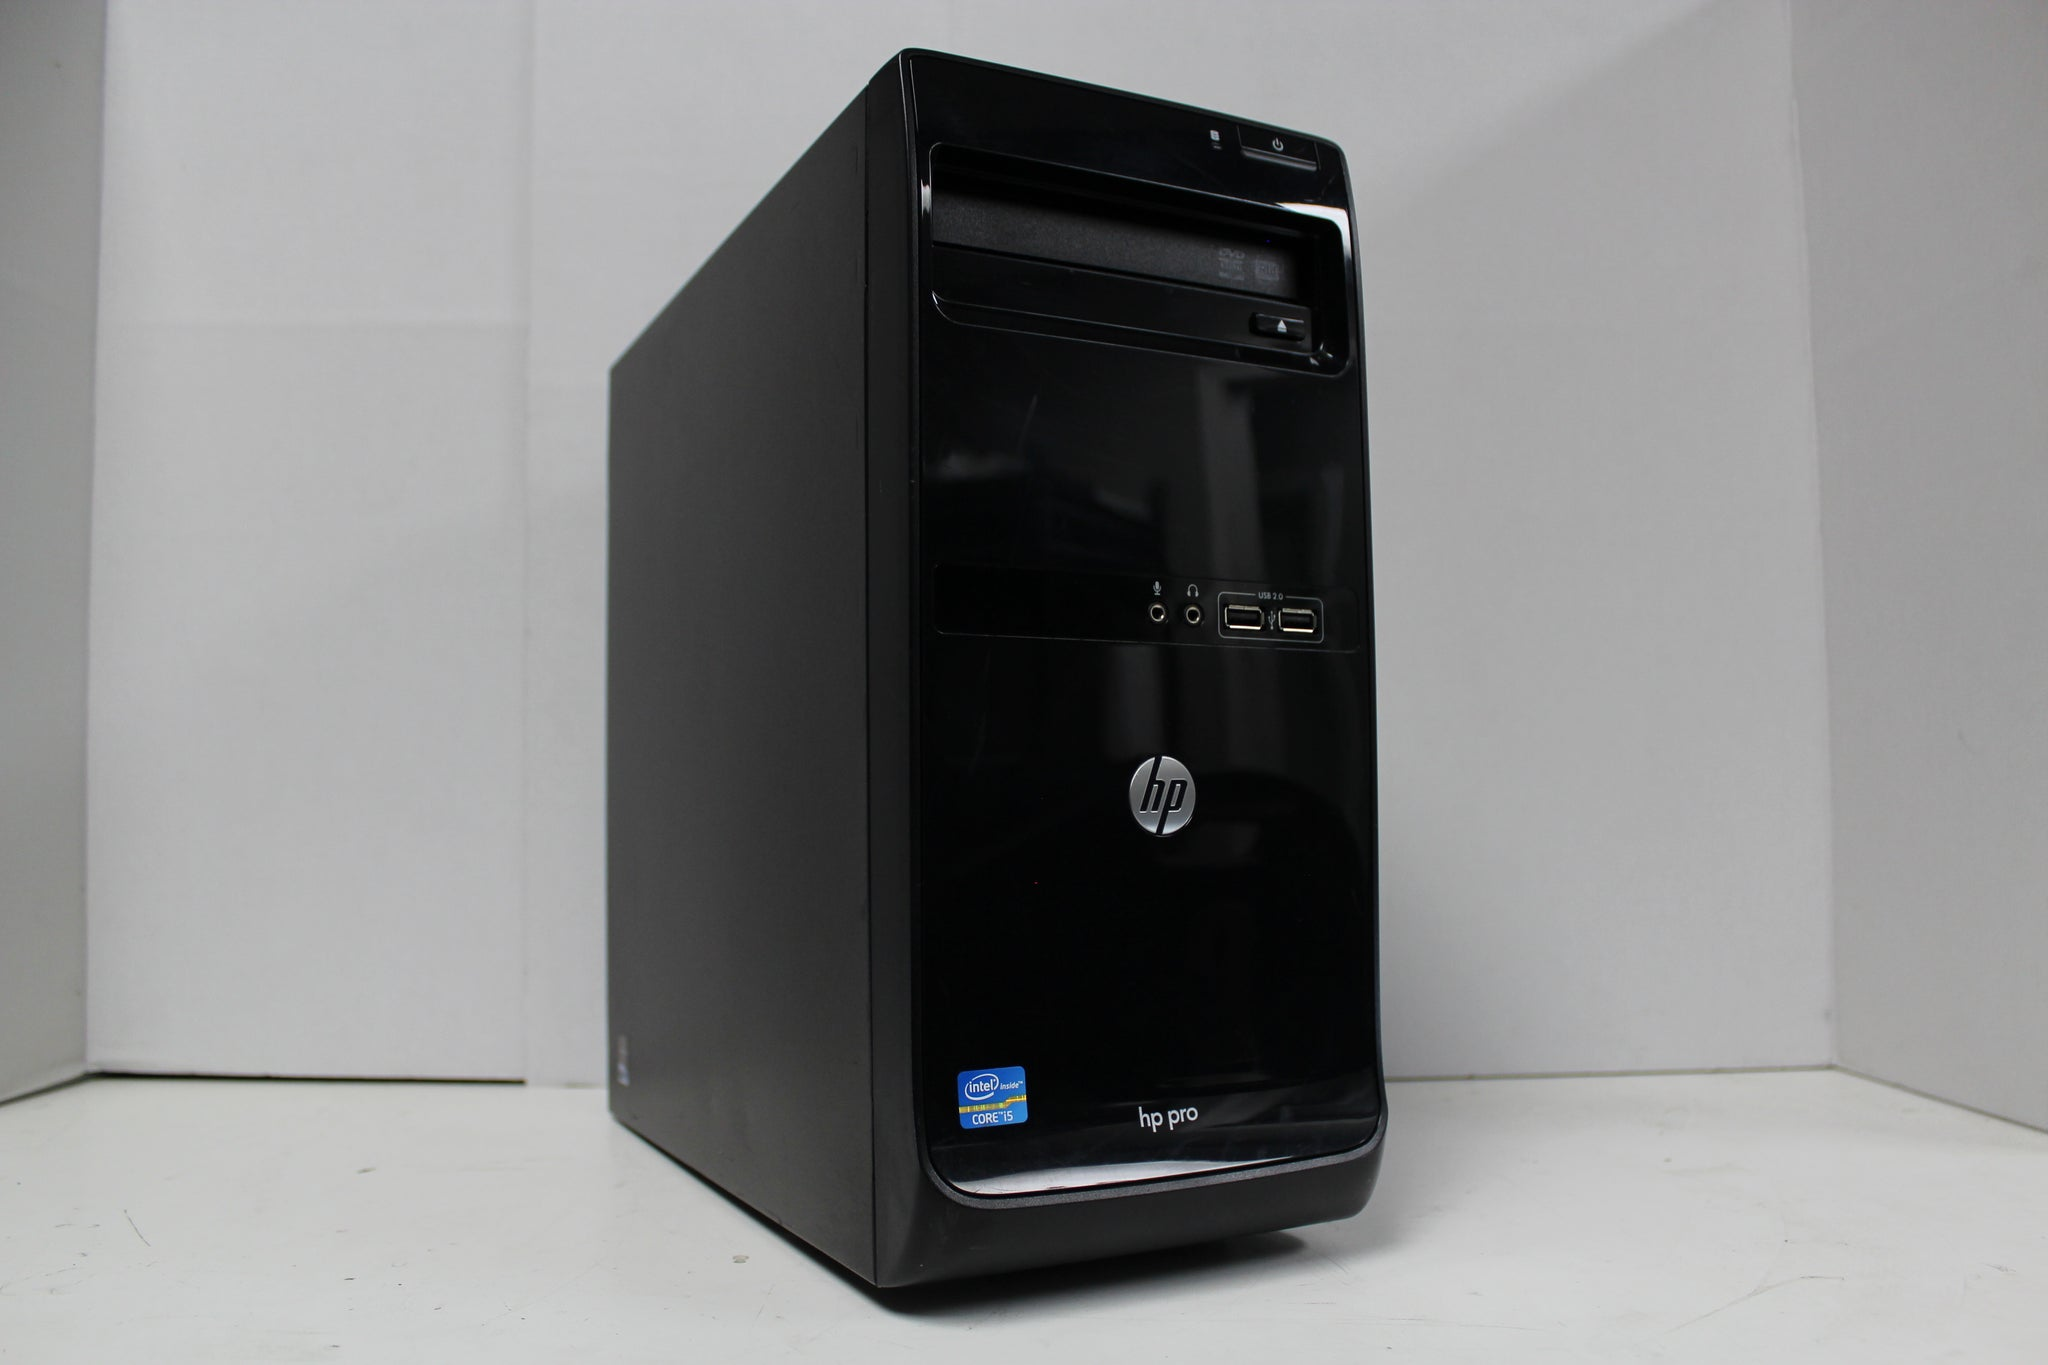 HP Pro 3500 MT Refurbished Desktop Intel i5 Processor